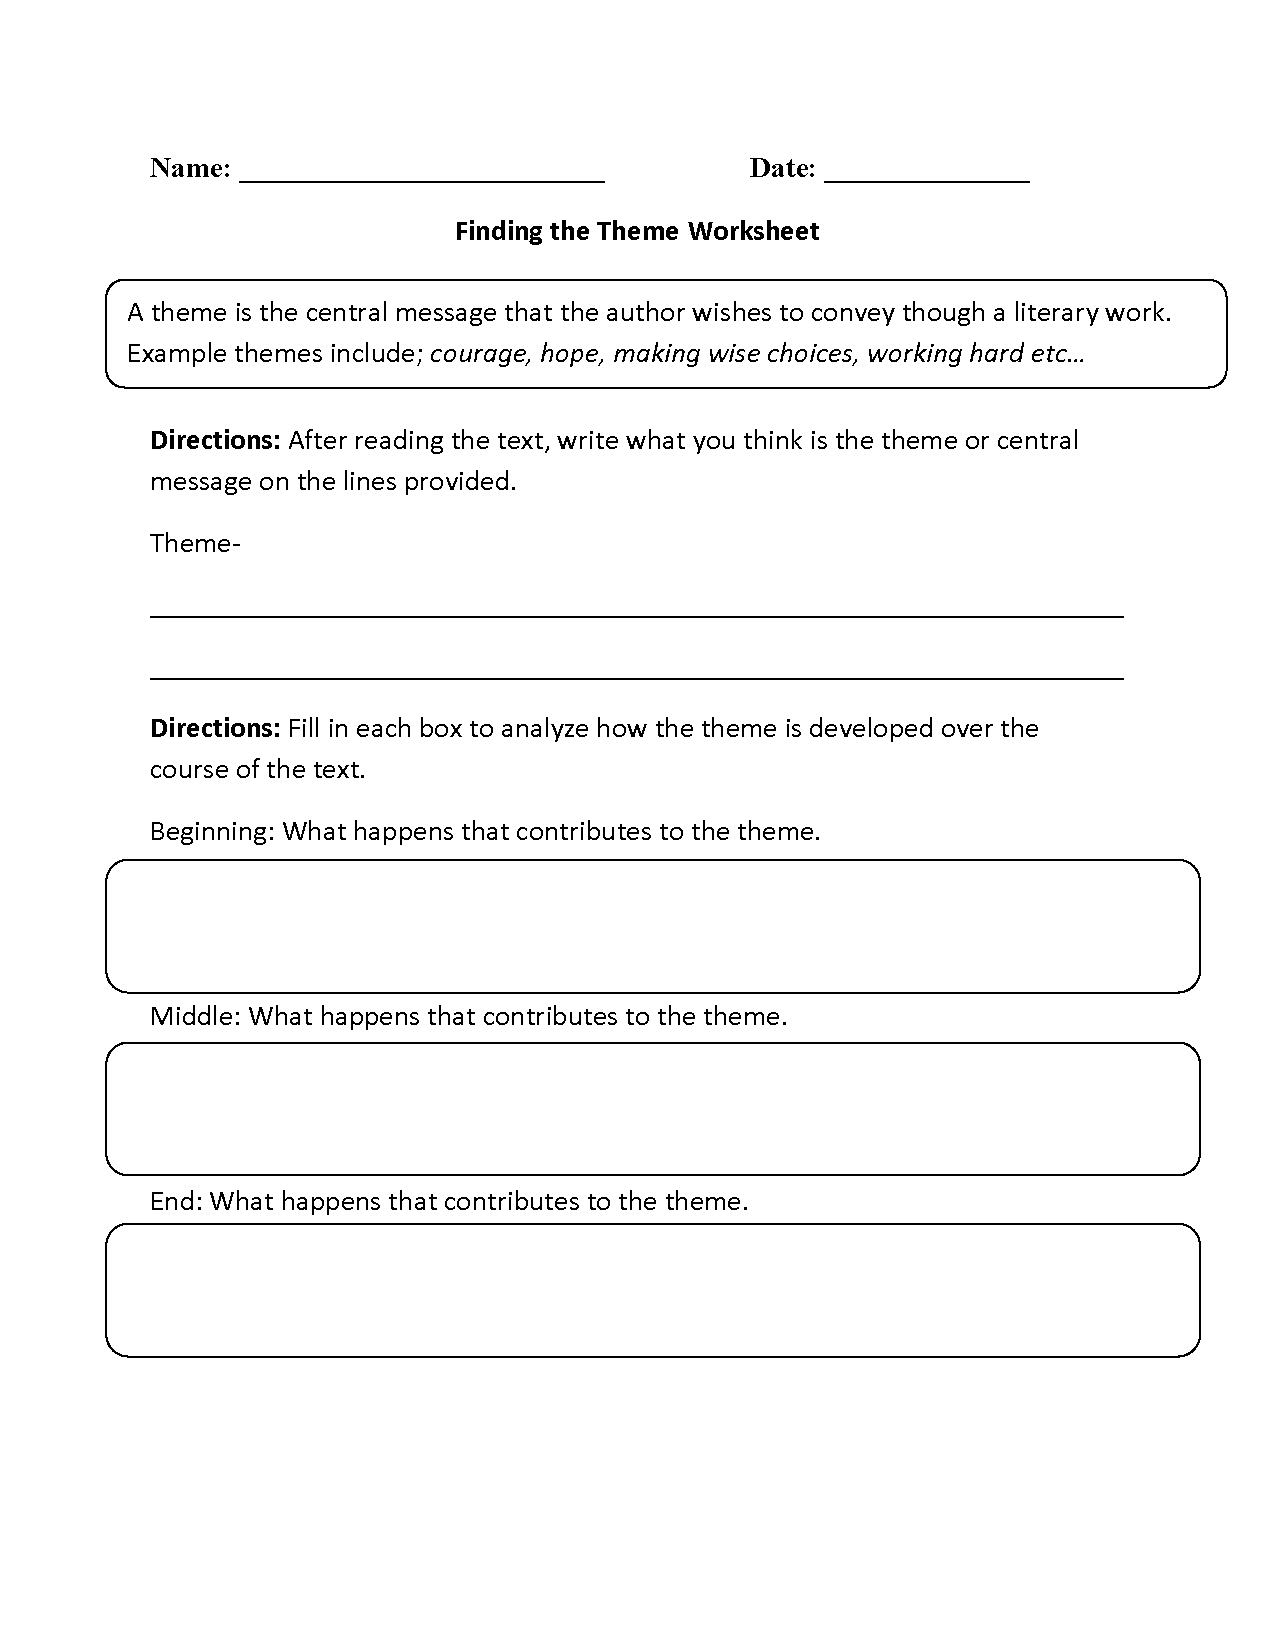 Finding The Theme Worksheet Beginner